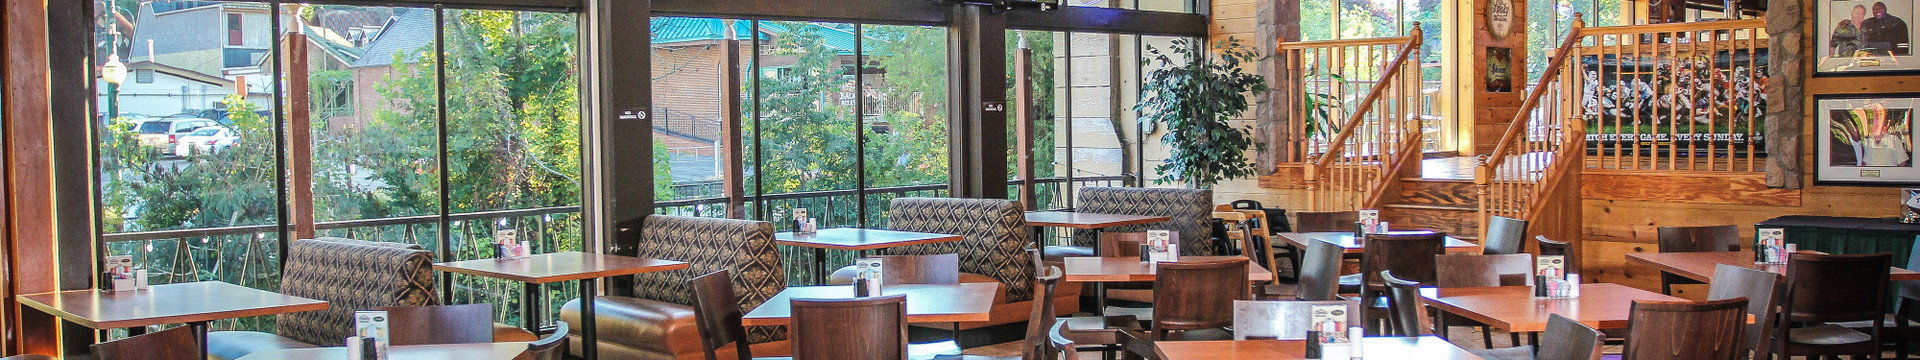 Inside the best restaurant in Gatlinburg, TN | Menu For Drafts Burger Bar | River Terrace Resort And Convention Center